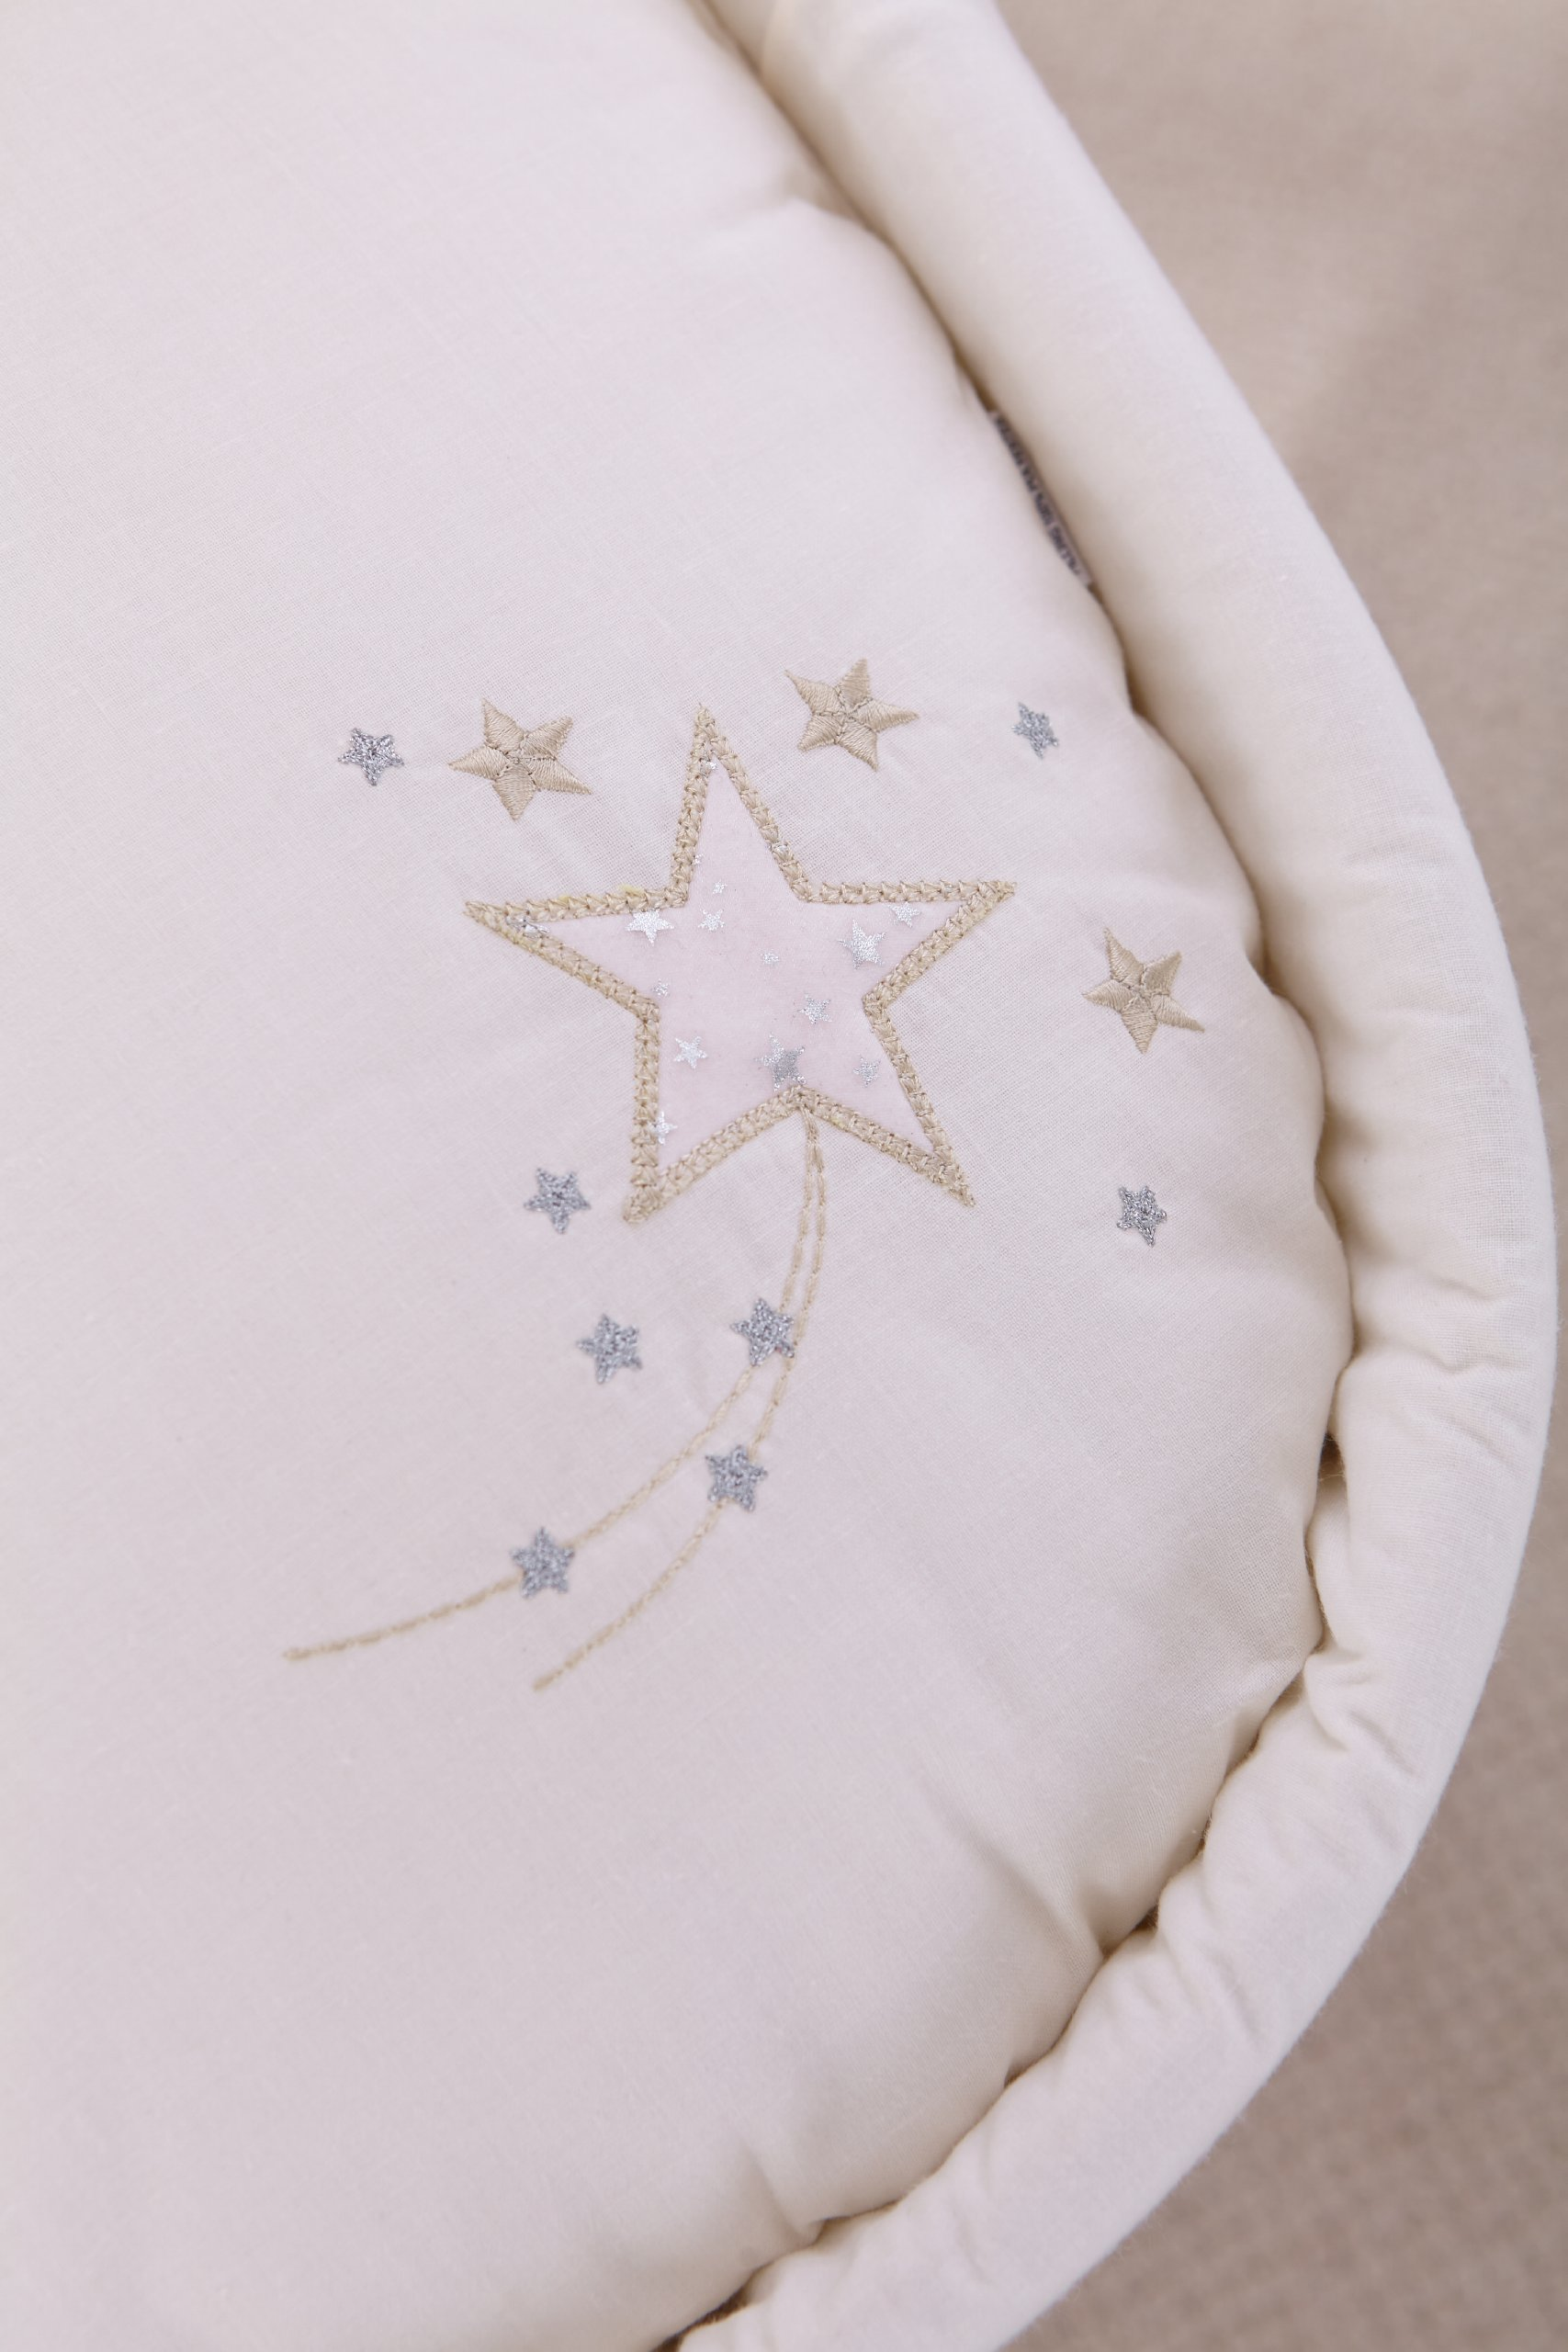 Clair de Lune Starburst Palm Moses Basket inc. bedding, mattress & adjustable hood (Cream) Clair de Lune Made from super soft fabric and featuring intricately embroidered shooting stars it's a simple and stylish Moses bedding set to suit most tastes. Comes complete with an adjustable hood, padded liner, coverlet, 2 carry handles, and a mattress. *Stand sold separately. Adjustable hood that's perfect for creating a cosy sleeping space for your precious little one. 3